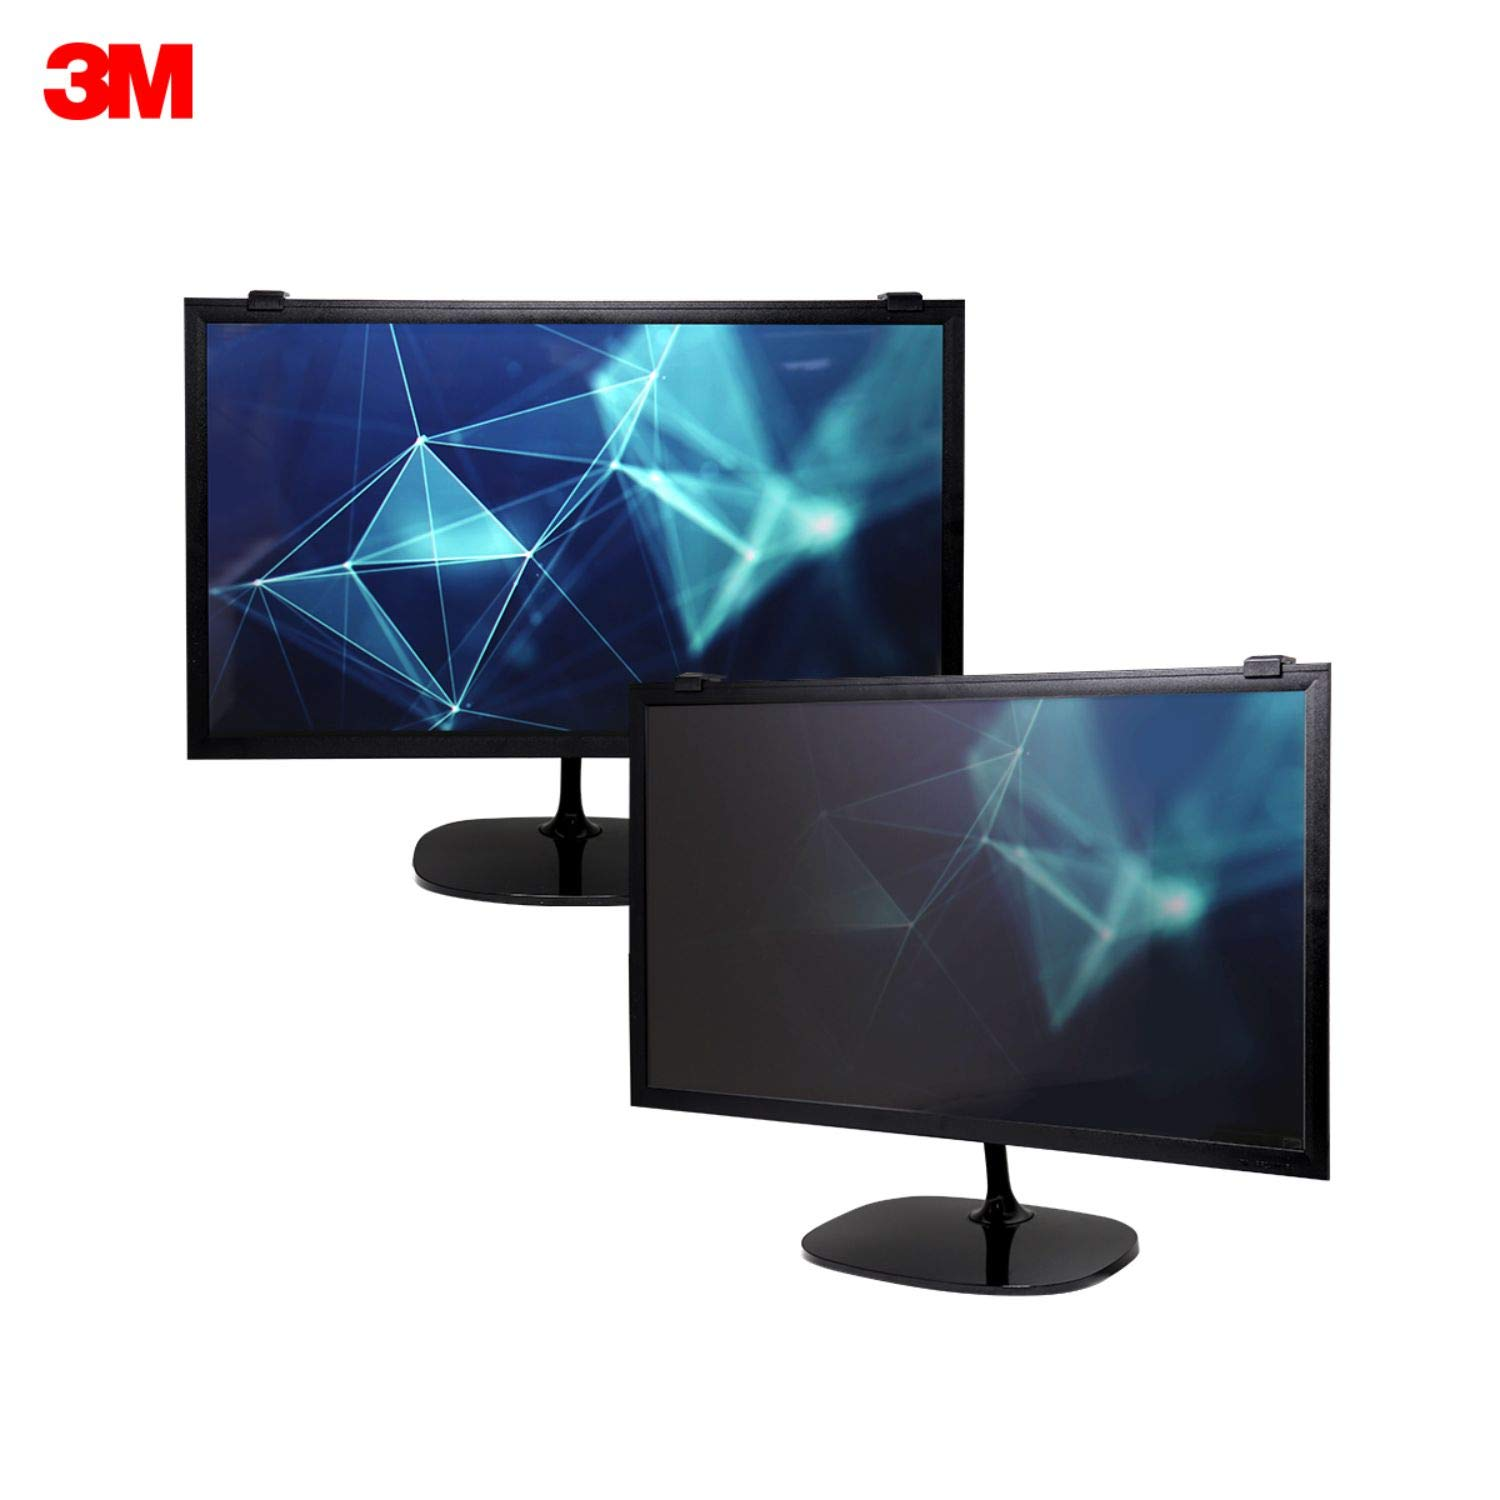 3M Framed Privacy Filter for 22'' Widescreen Monitor (16:10) (PF220W1F) by 3M